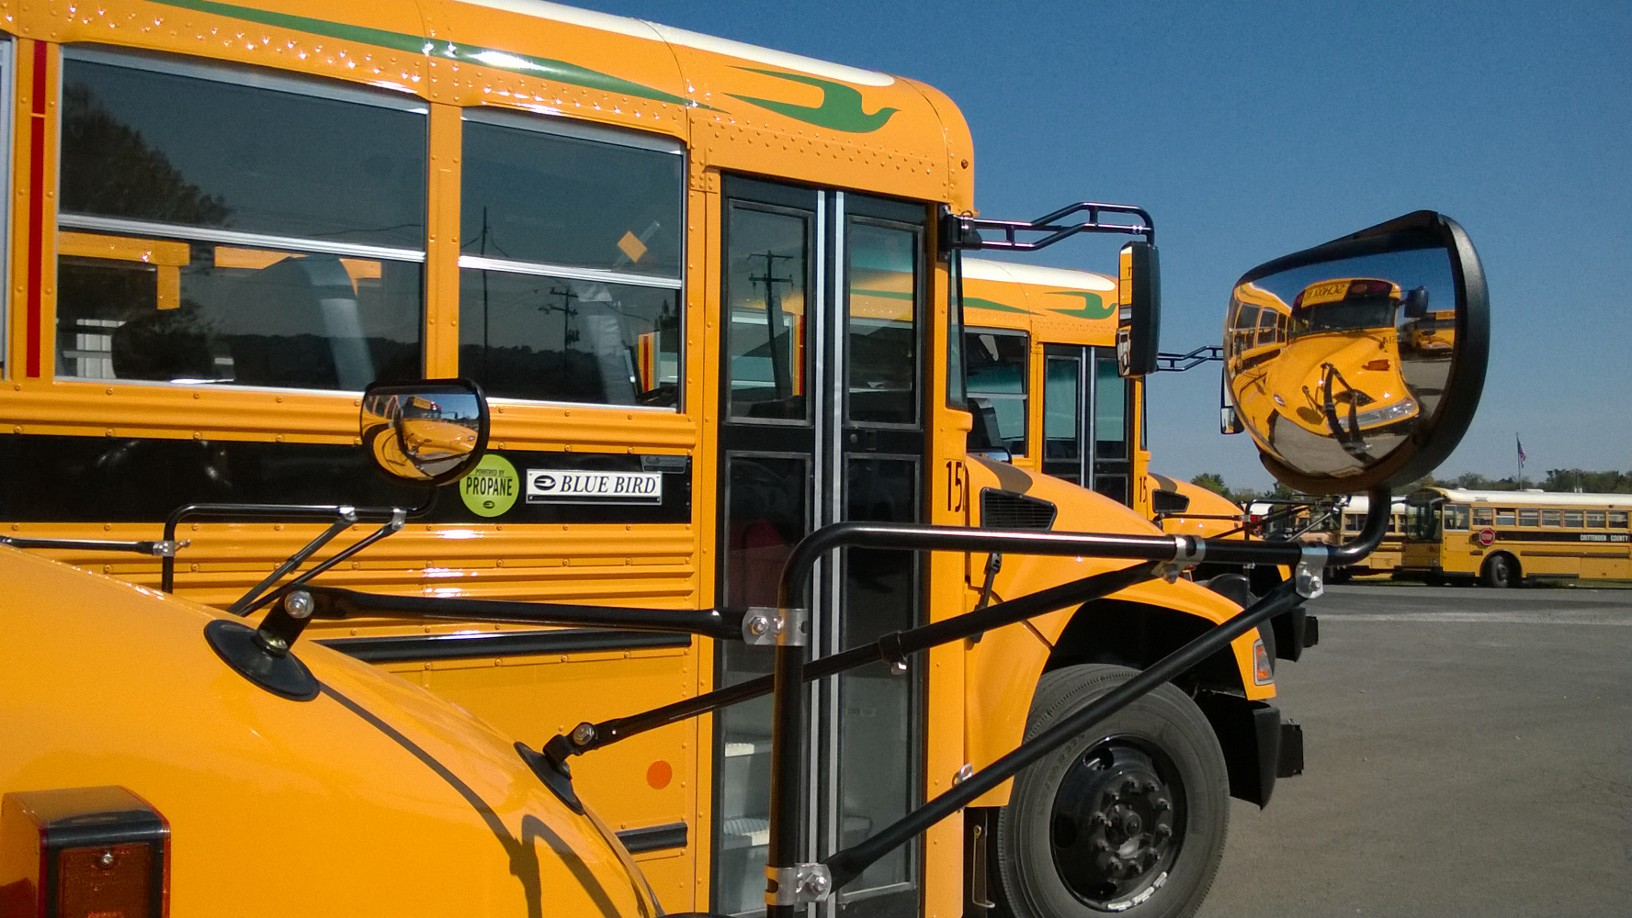 LPG School Buses Coming to KY School Districts - Kentucky Clean Fuels Coalition